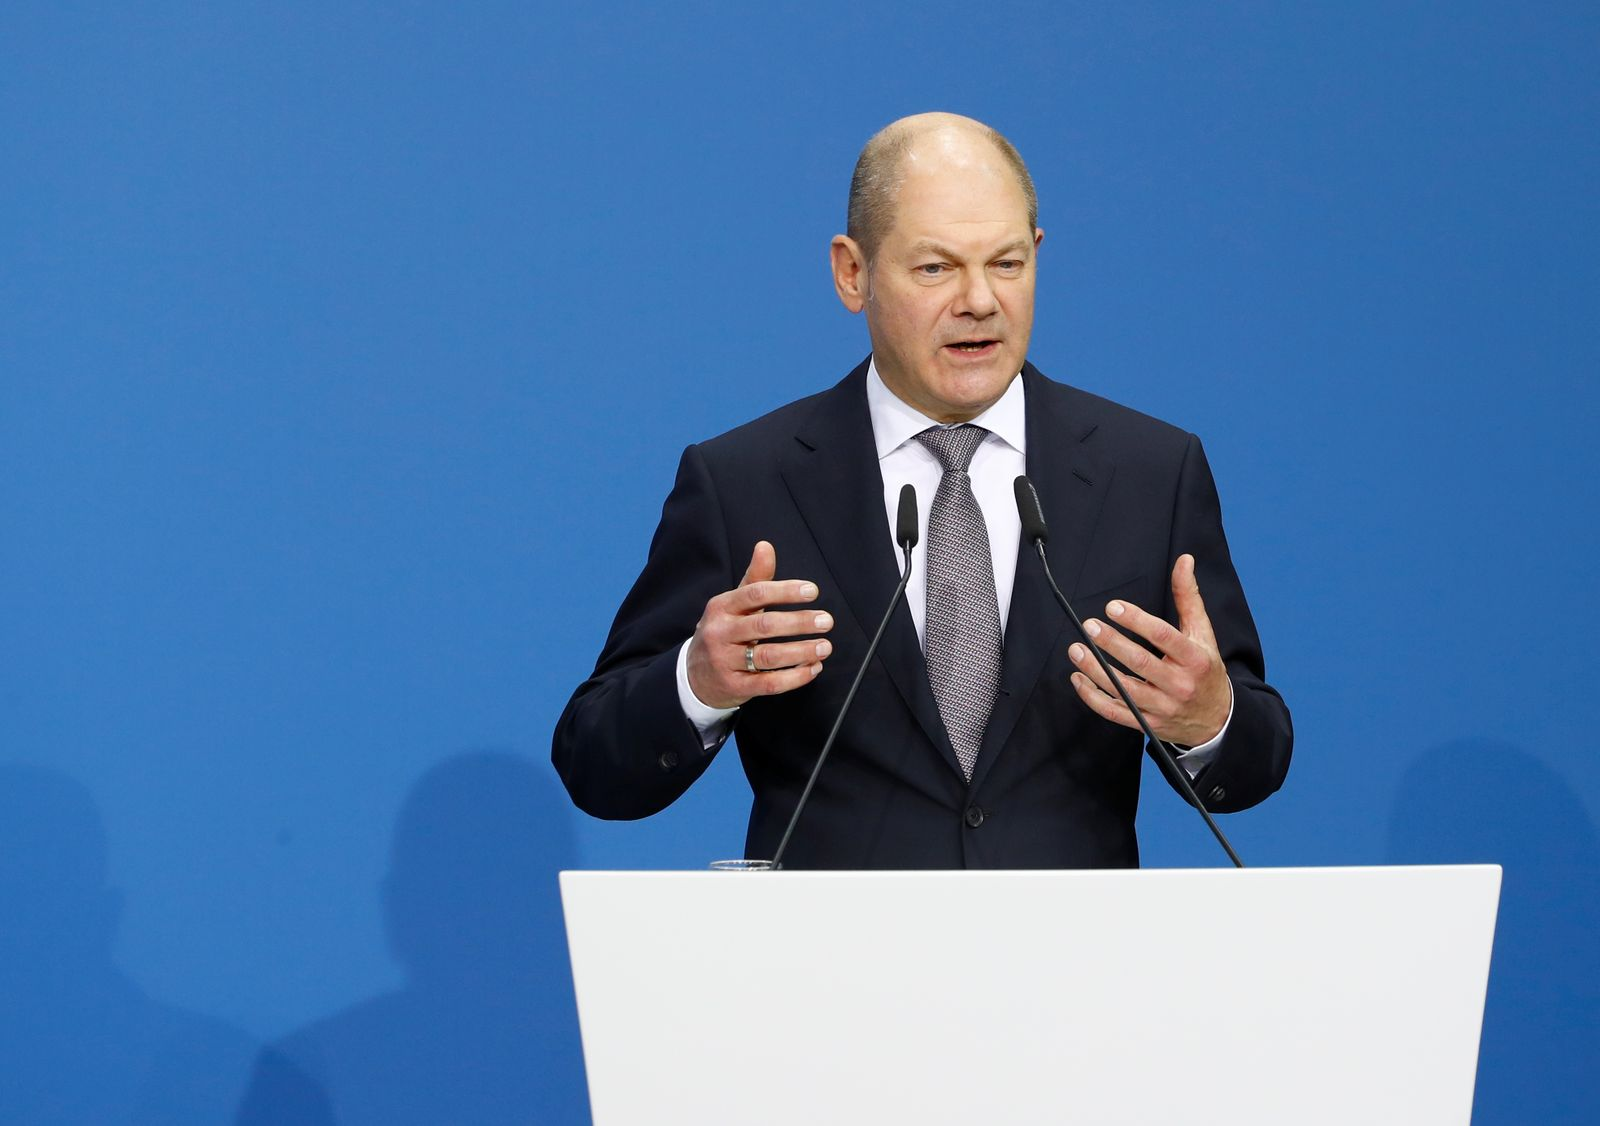 Leader of the Social Democratic Party (SPD) Olaf Scholz speaks prior to signing a coalition deal during a ceremony in Berlin